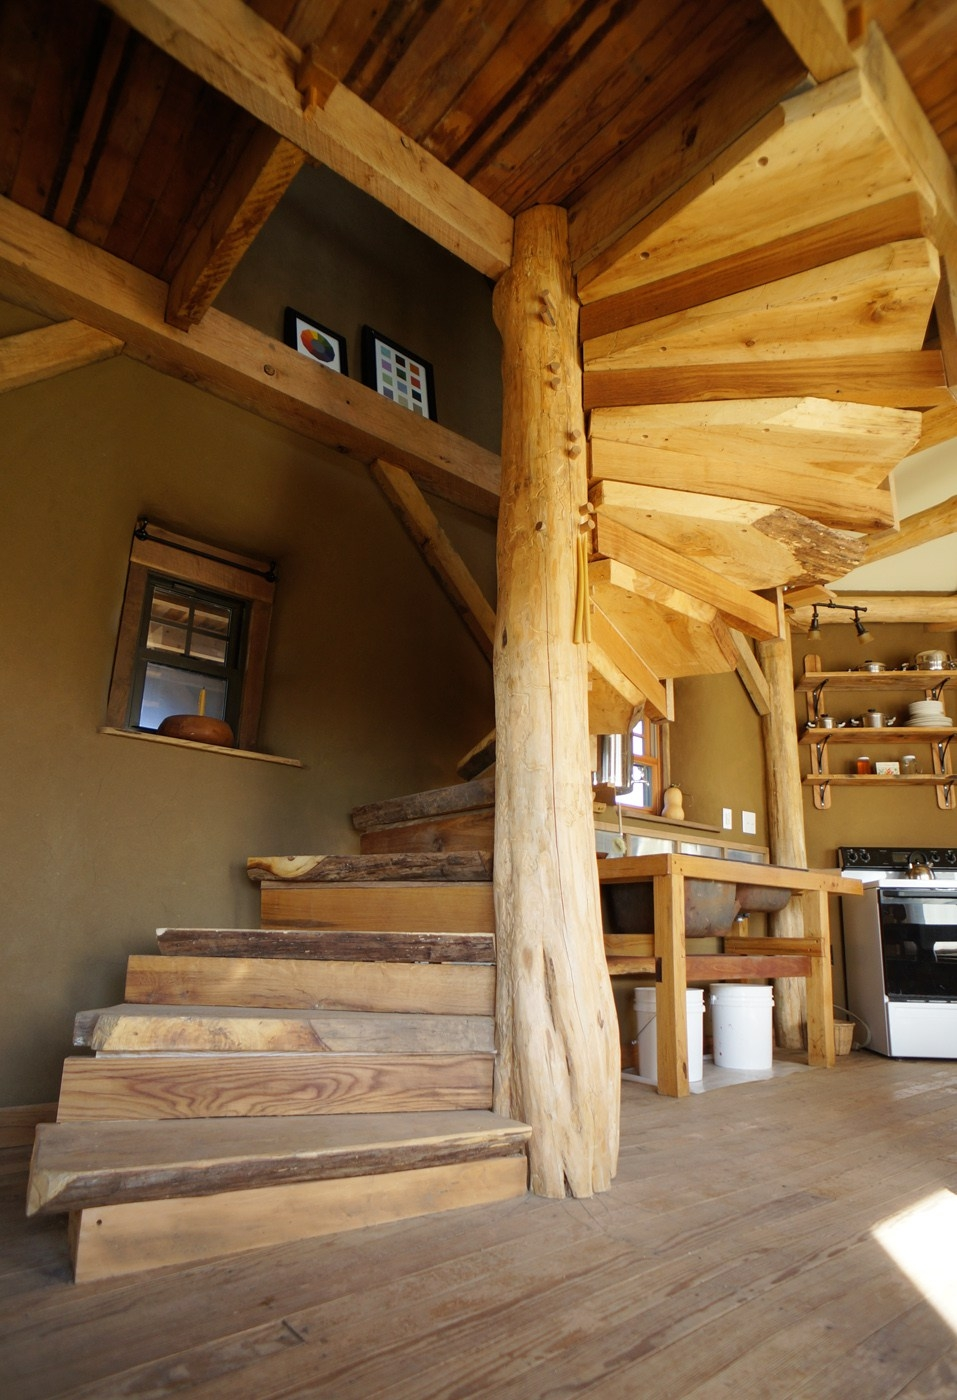 Diy Wooden Spiral Staircase Design How We Built It The Year Of Mud   Building A Spiral Staircase Wood   Attic Stairs   Staircase Ideas   Outdoor Spiral   Curved Staircase Design   Attic Ladder